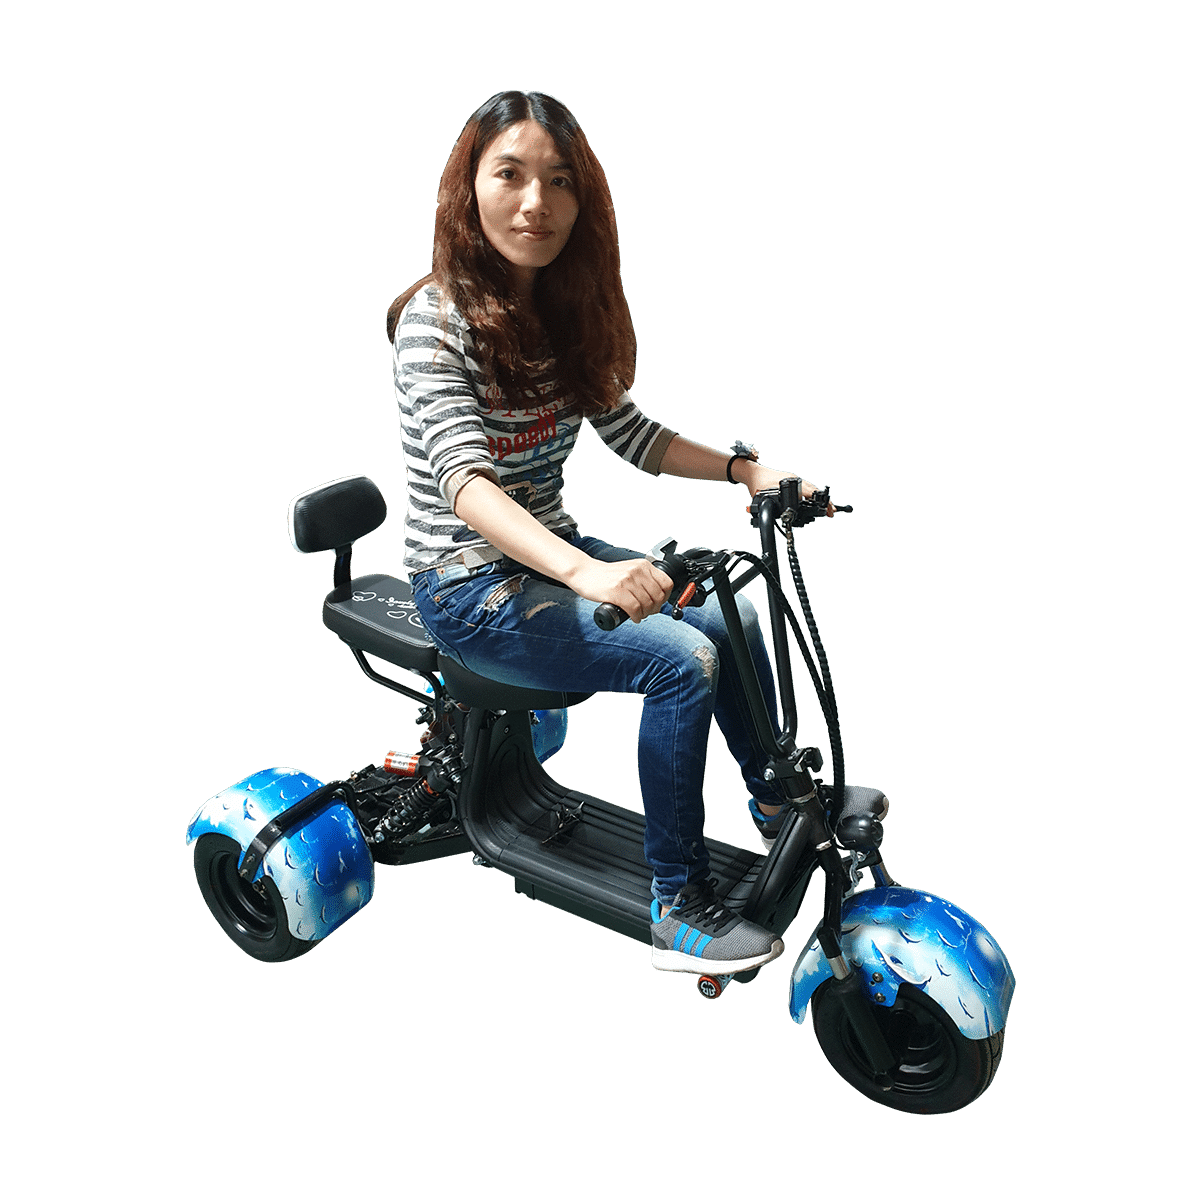 Citycoco Pocket Dragster 2